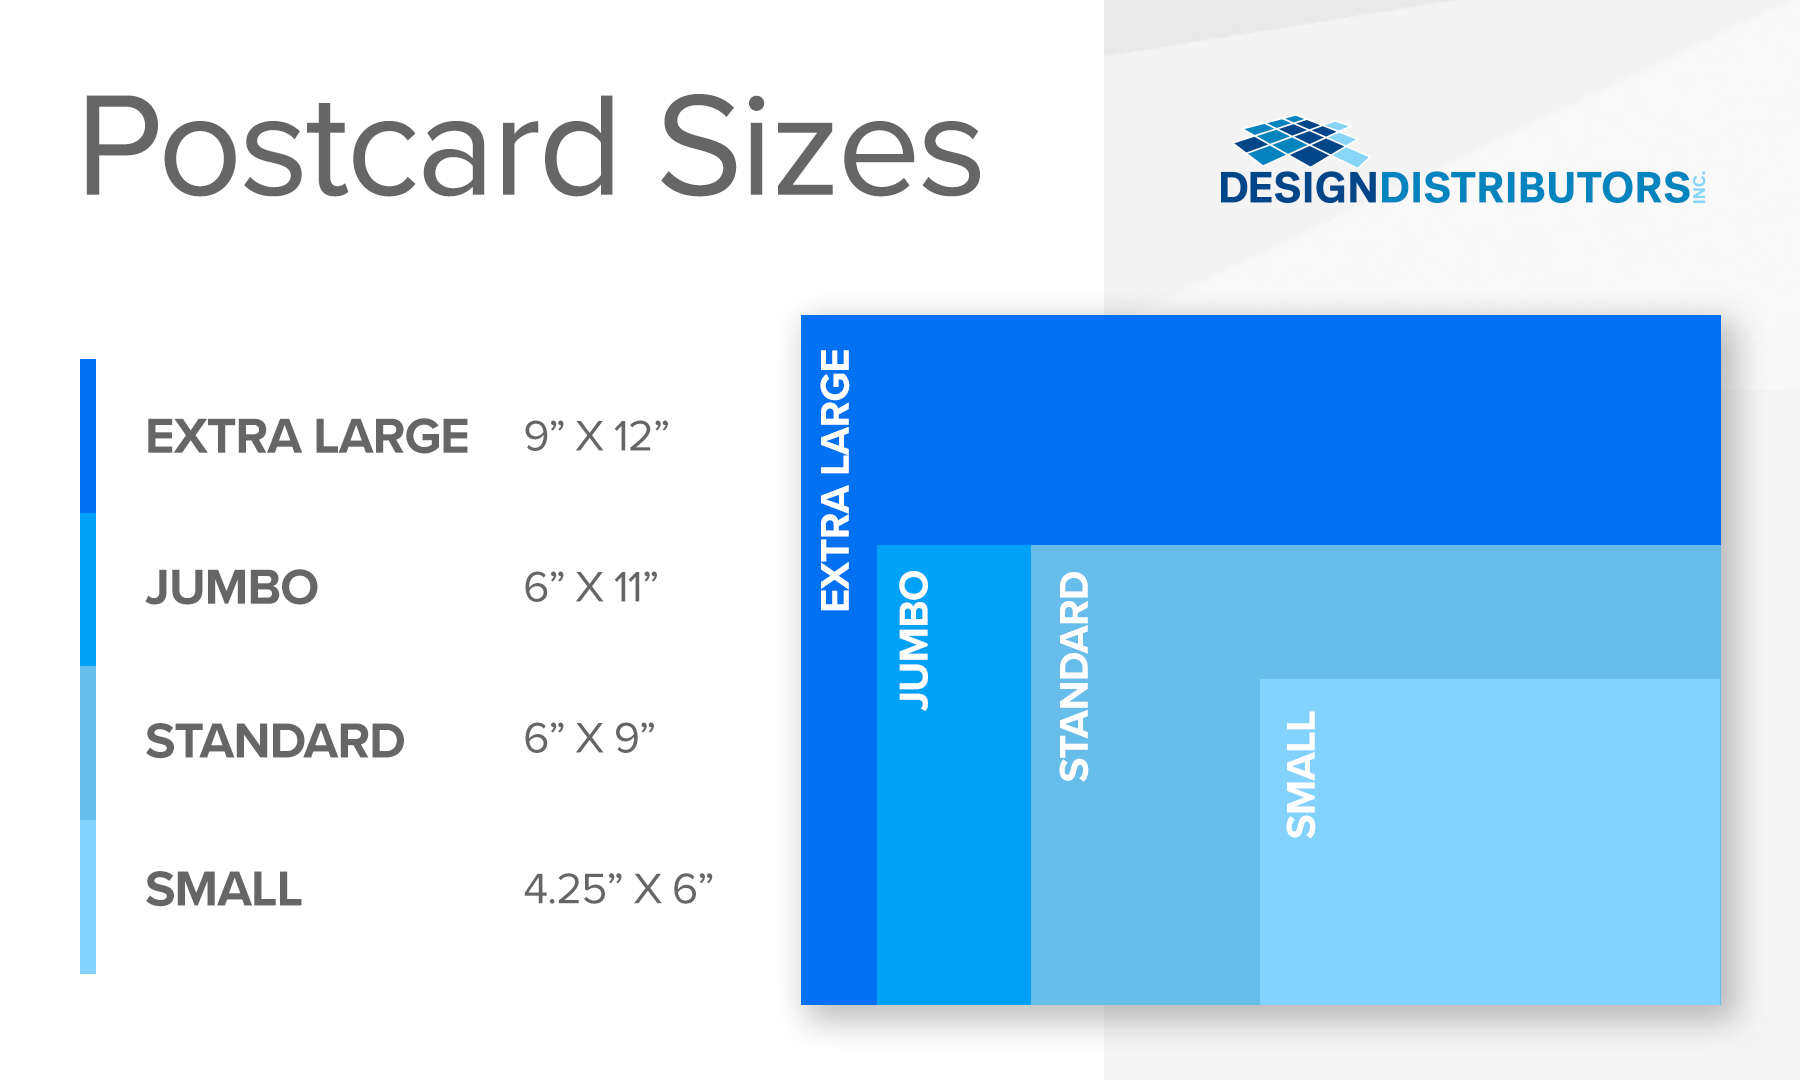 Postcard-Sizes-Infographic